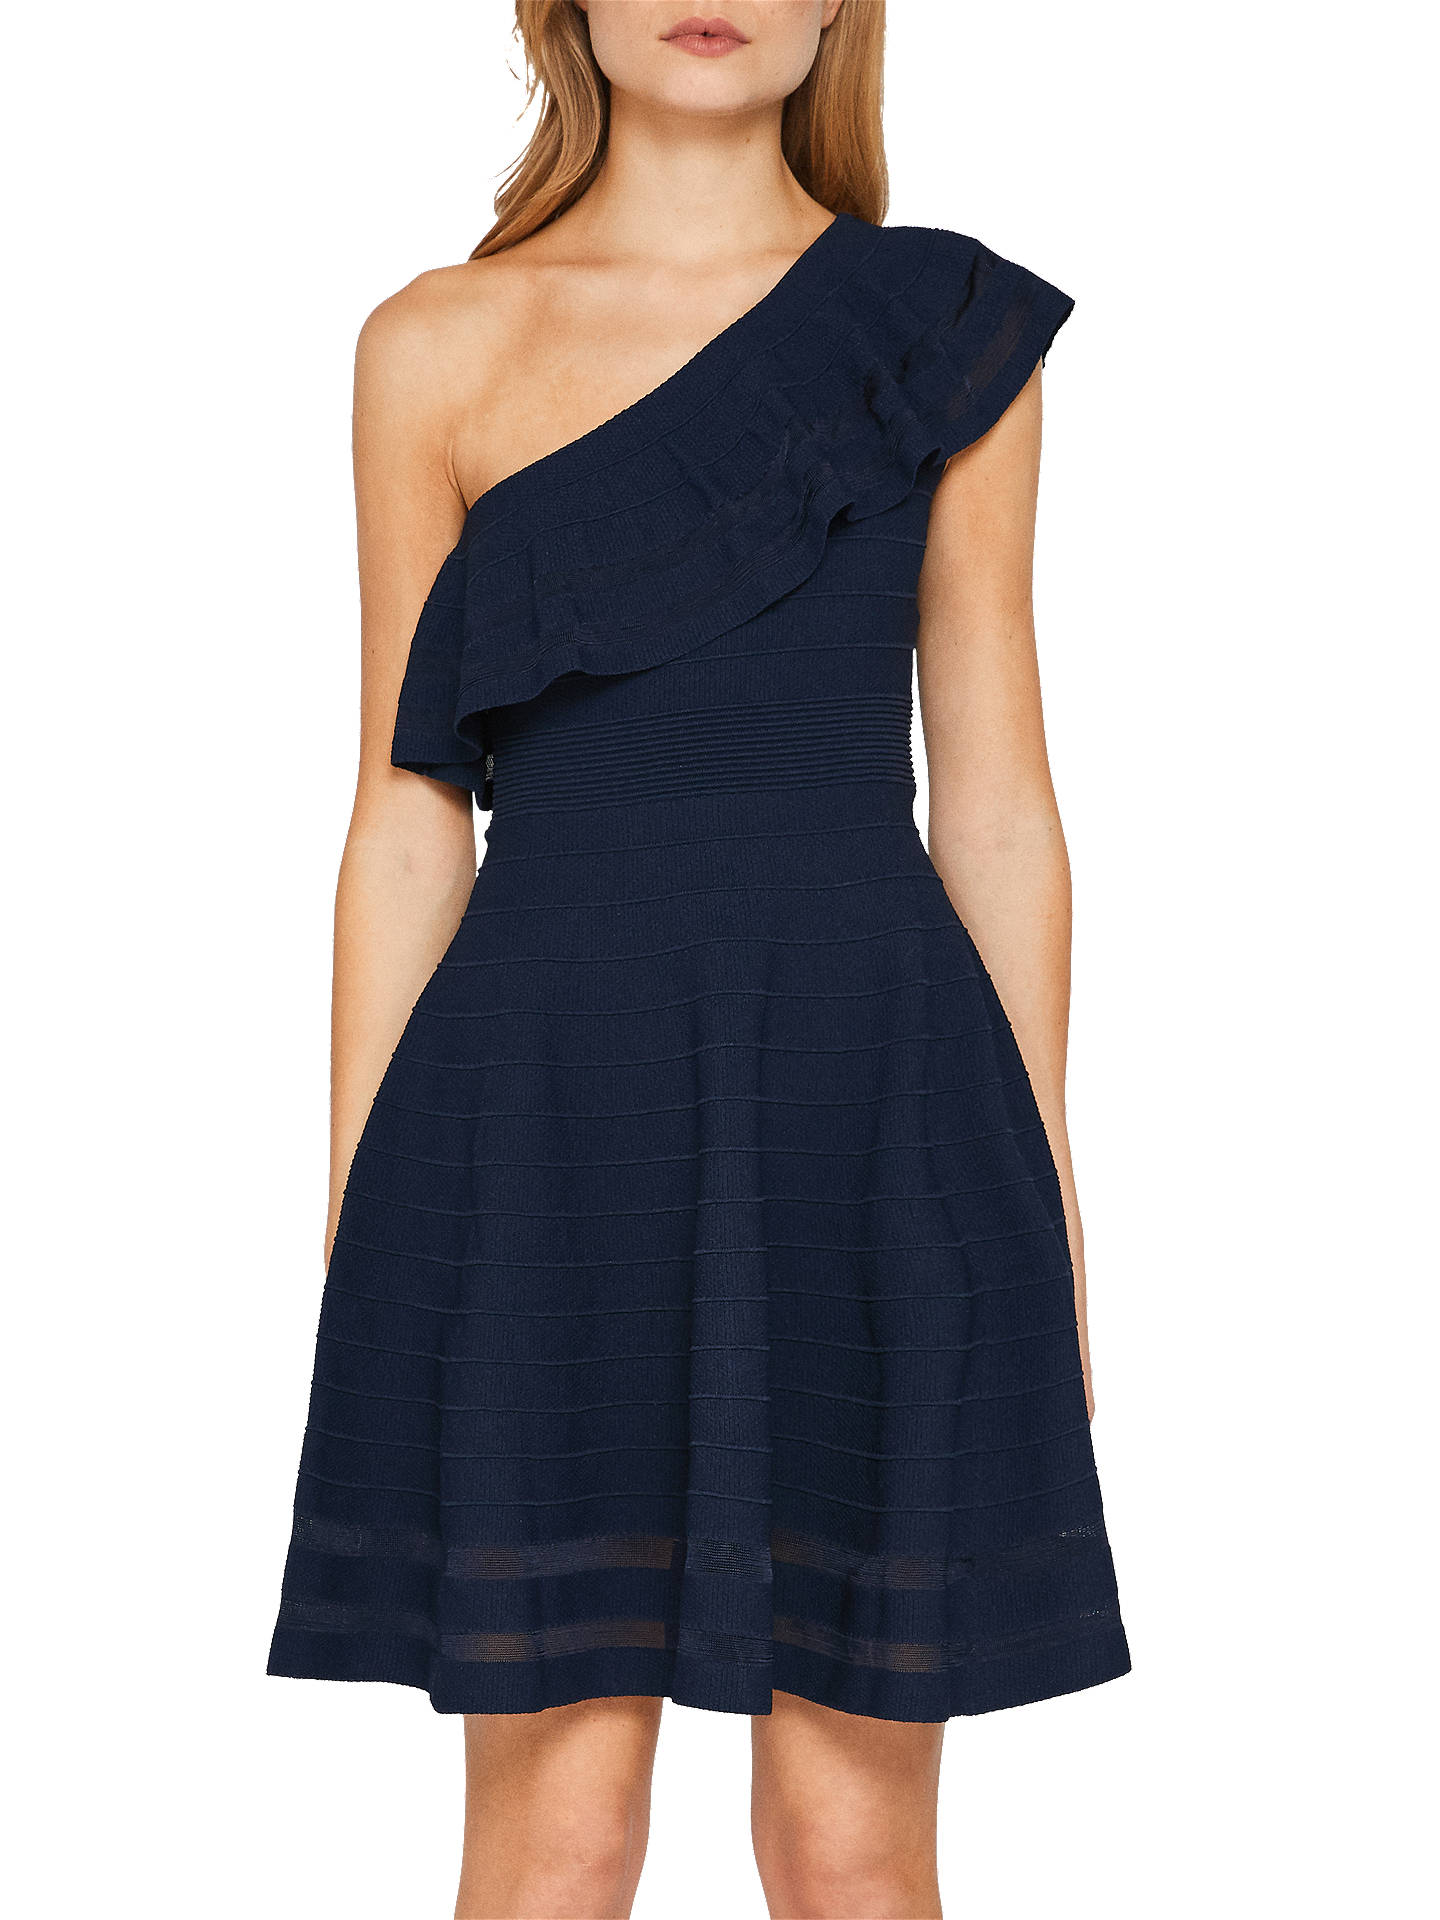 83c9a78fd72 BuyTed Baker Streena One Shoulder Knitted Dress